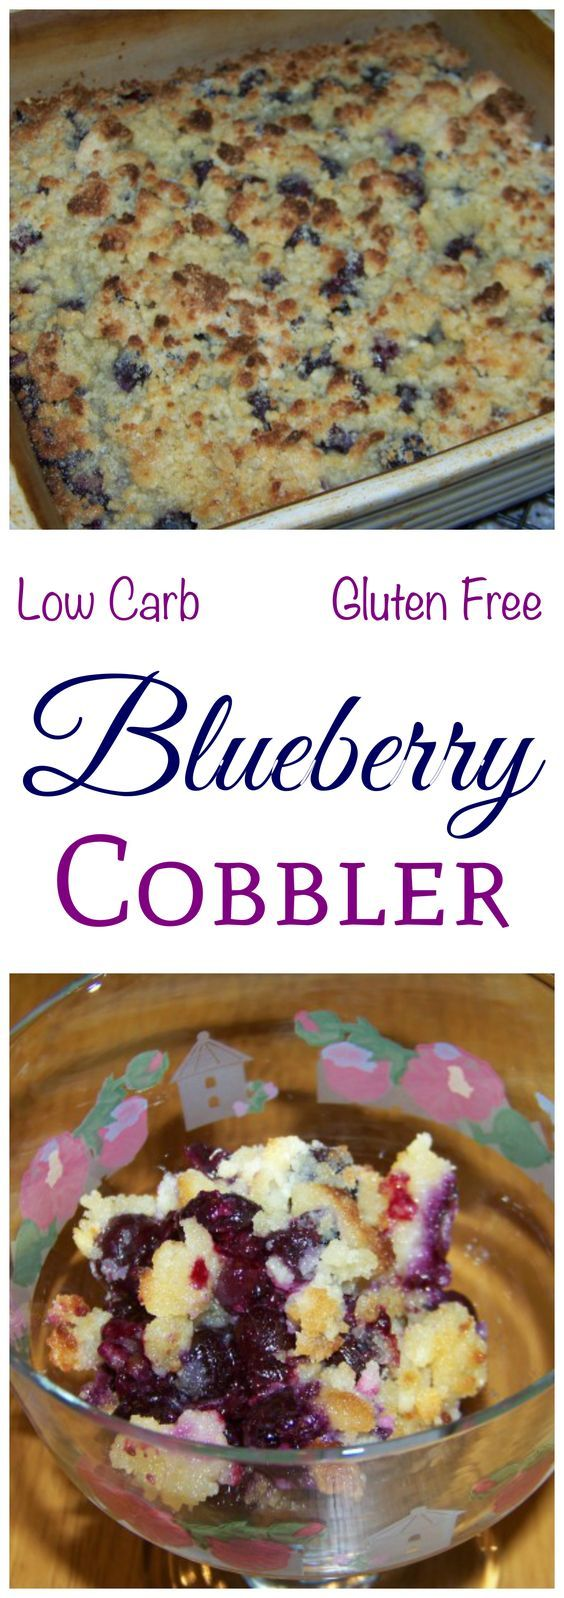 This is a really simple low carb blueberry cobbler recipe with a gluten free topping that tastes just like the real thing. Quick and easy to prepare. Sugar Free Keto Recipe (Healthy Low Carb Cookies)